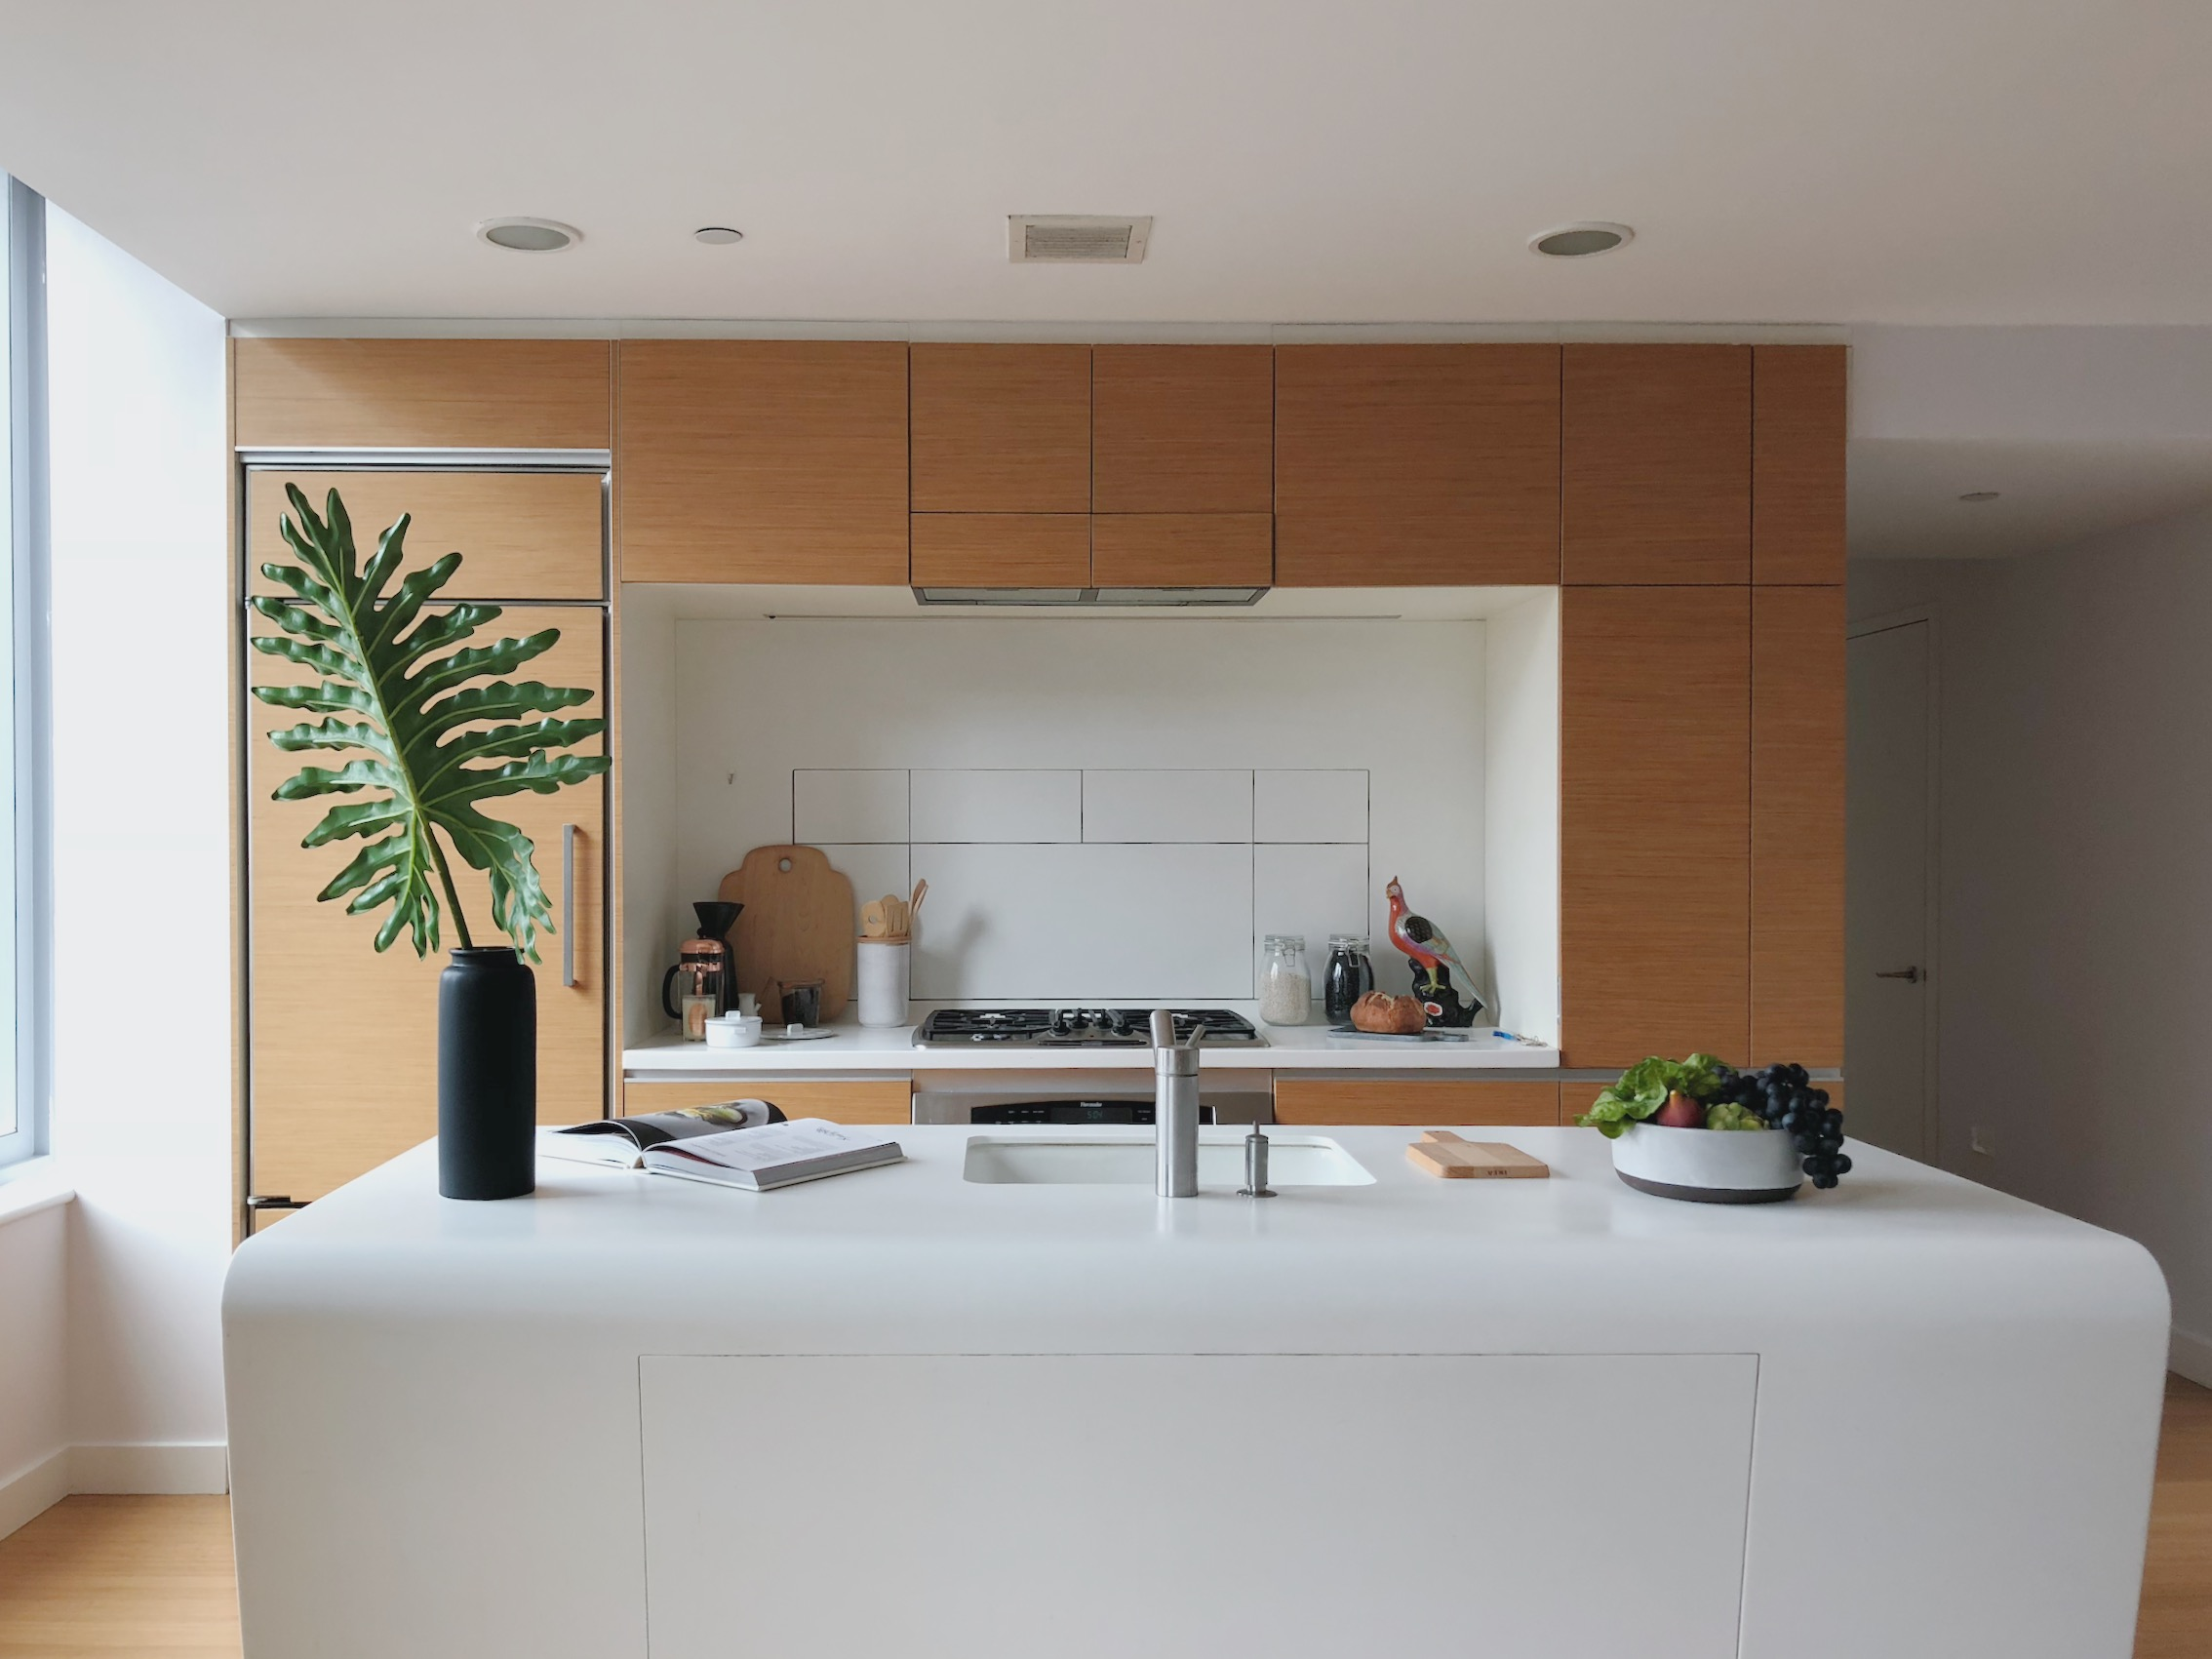 Hovey Design - Staging NYC Brooklyn - 5.jpg